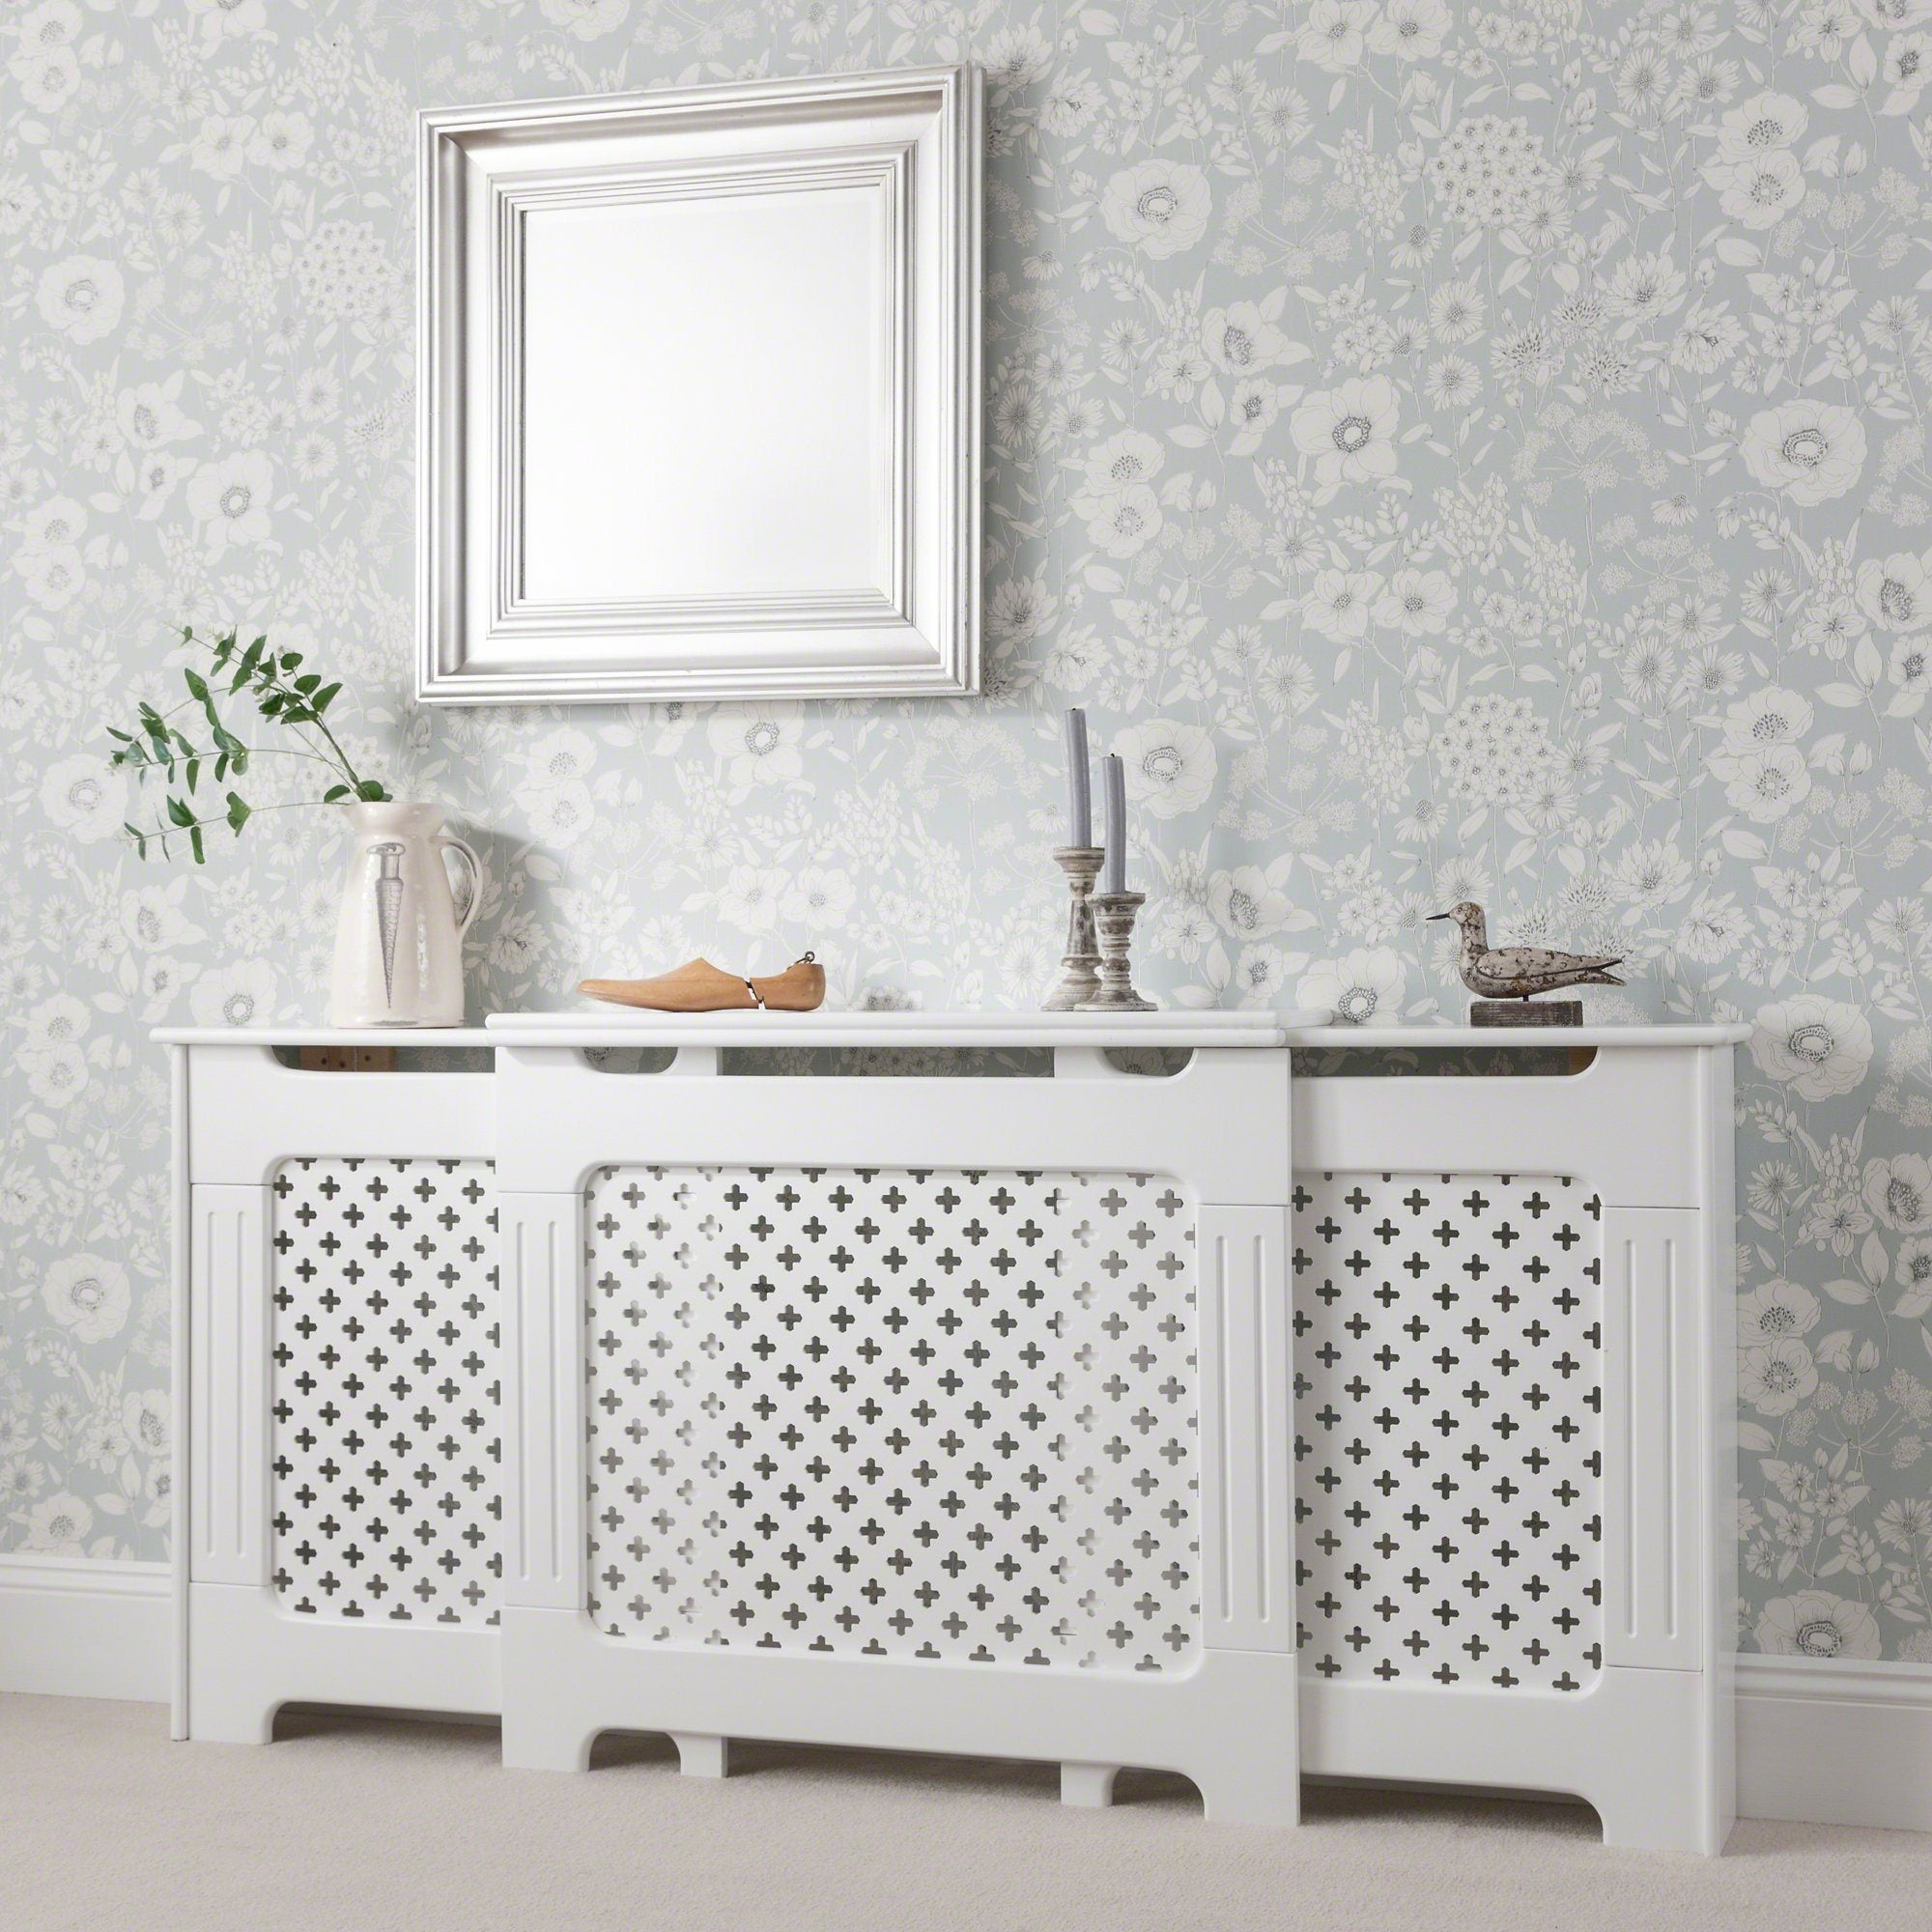 White Radiator Cover Adjustable Delivery On Or Before 19 February Laura James